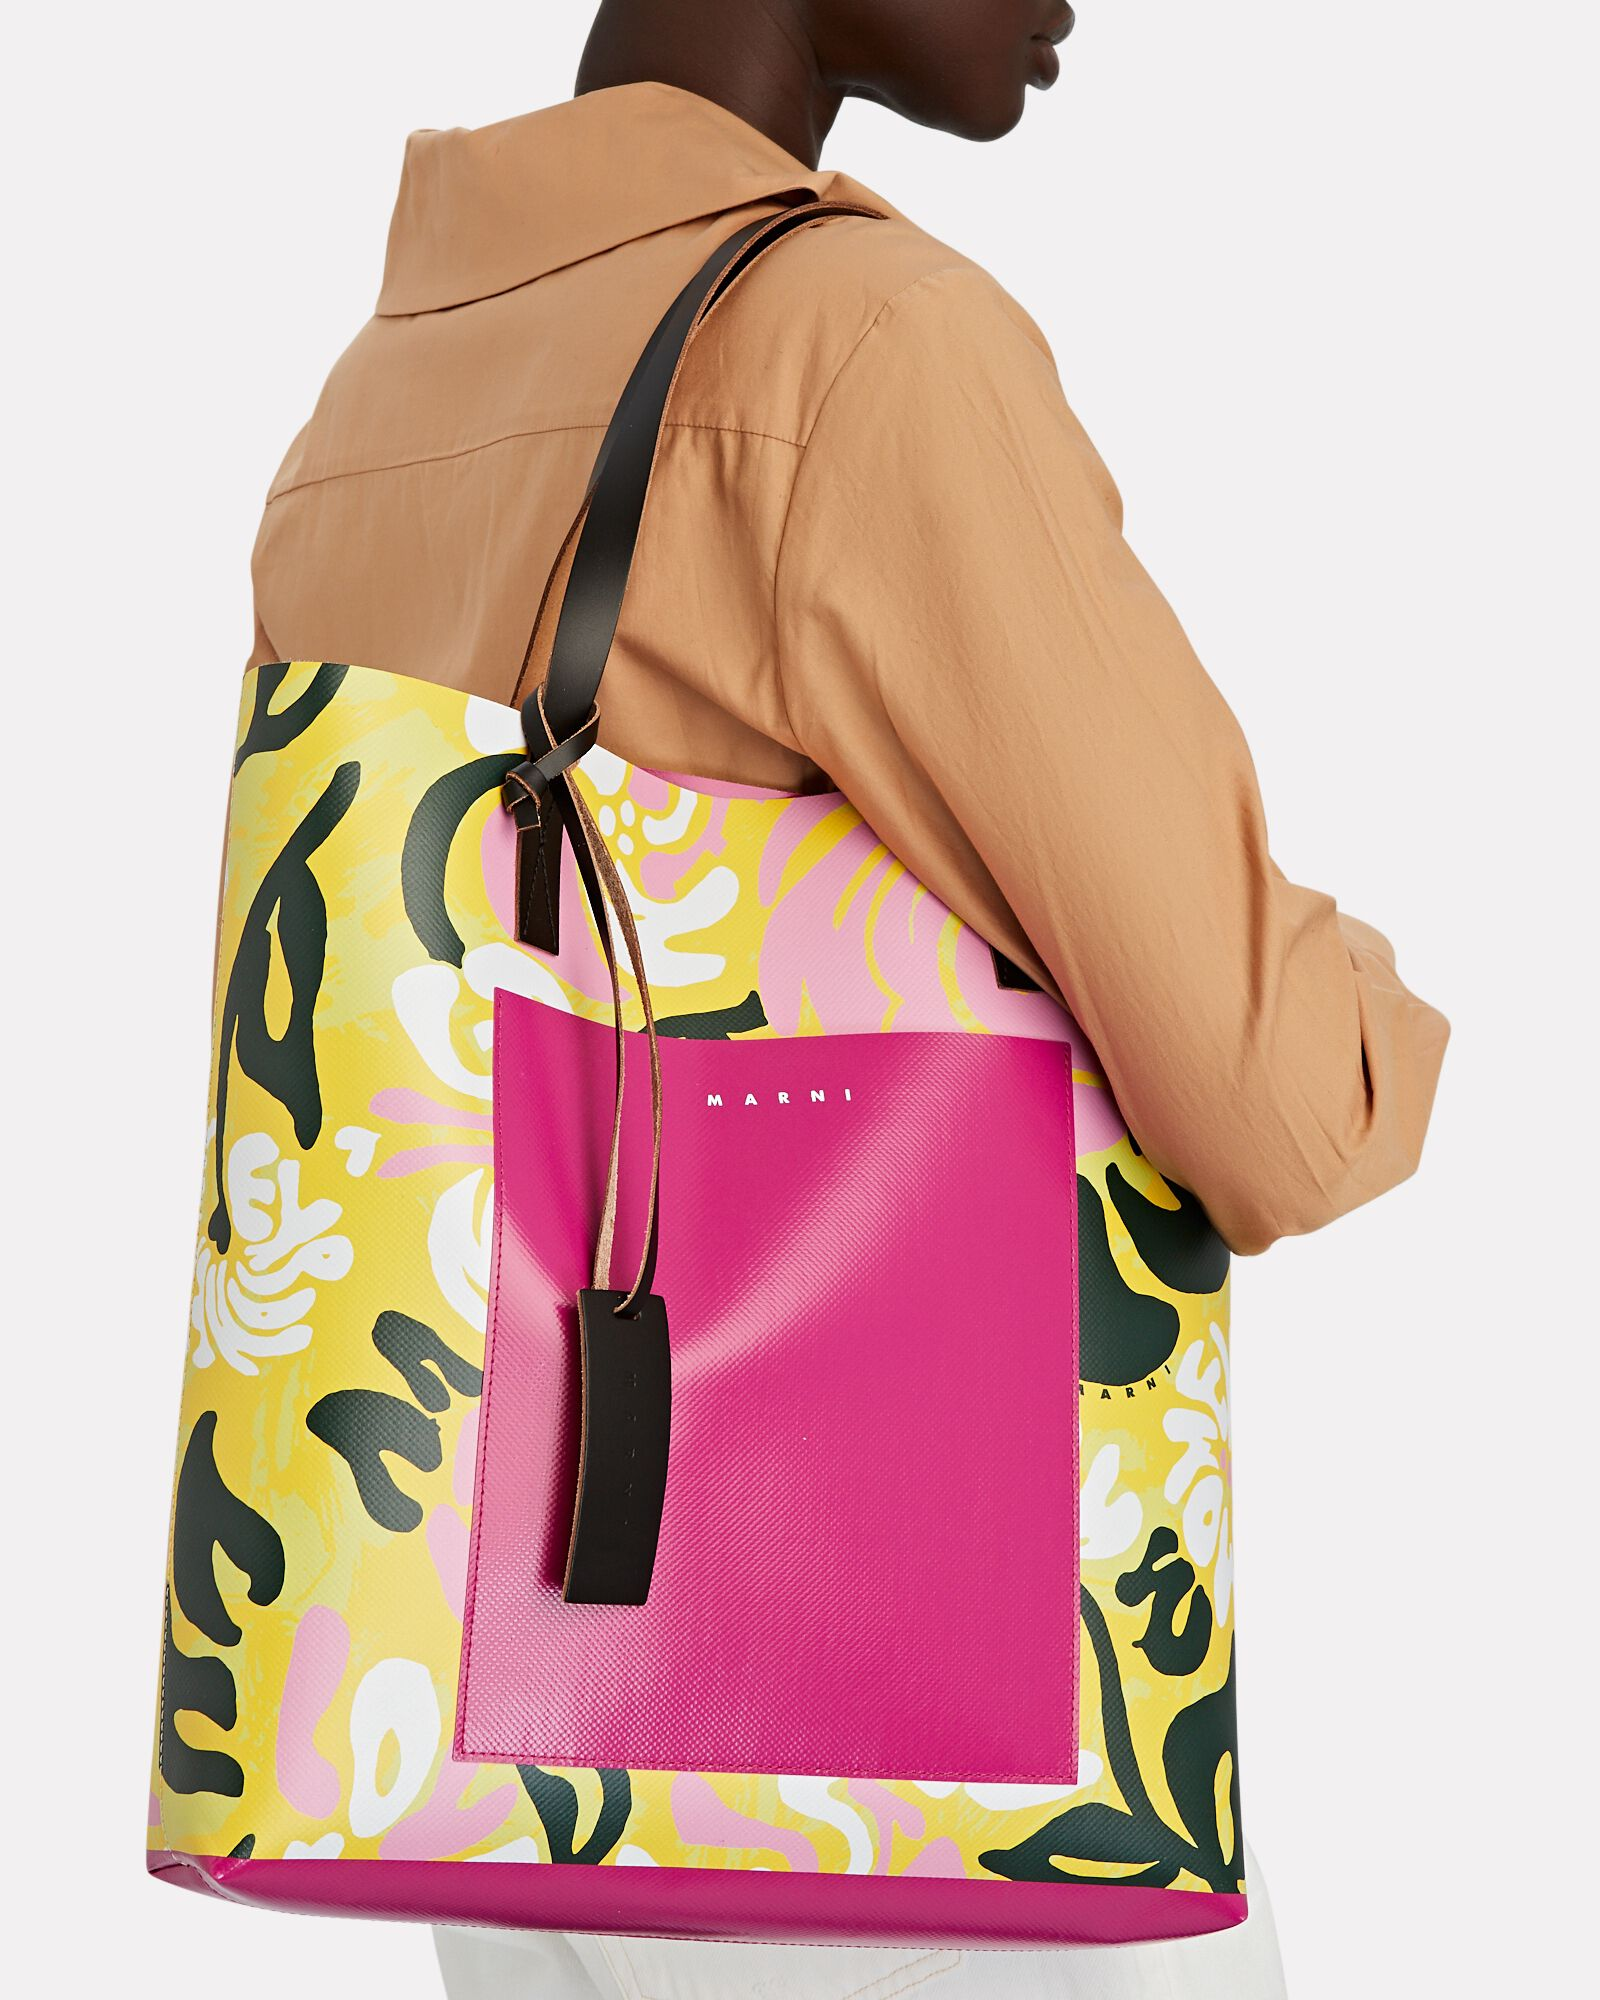 Floral Shopping Tote Bag, YELLOW/PINK, hi-res